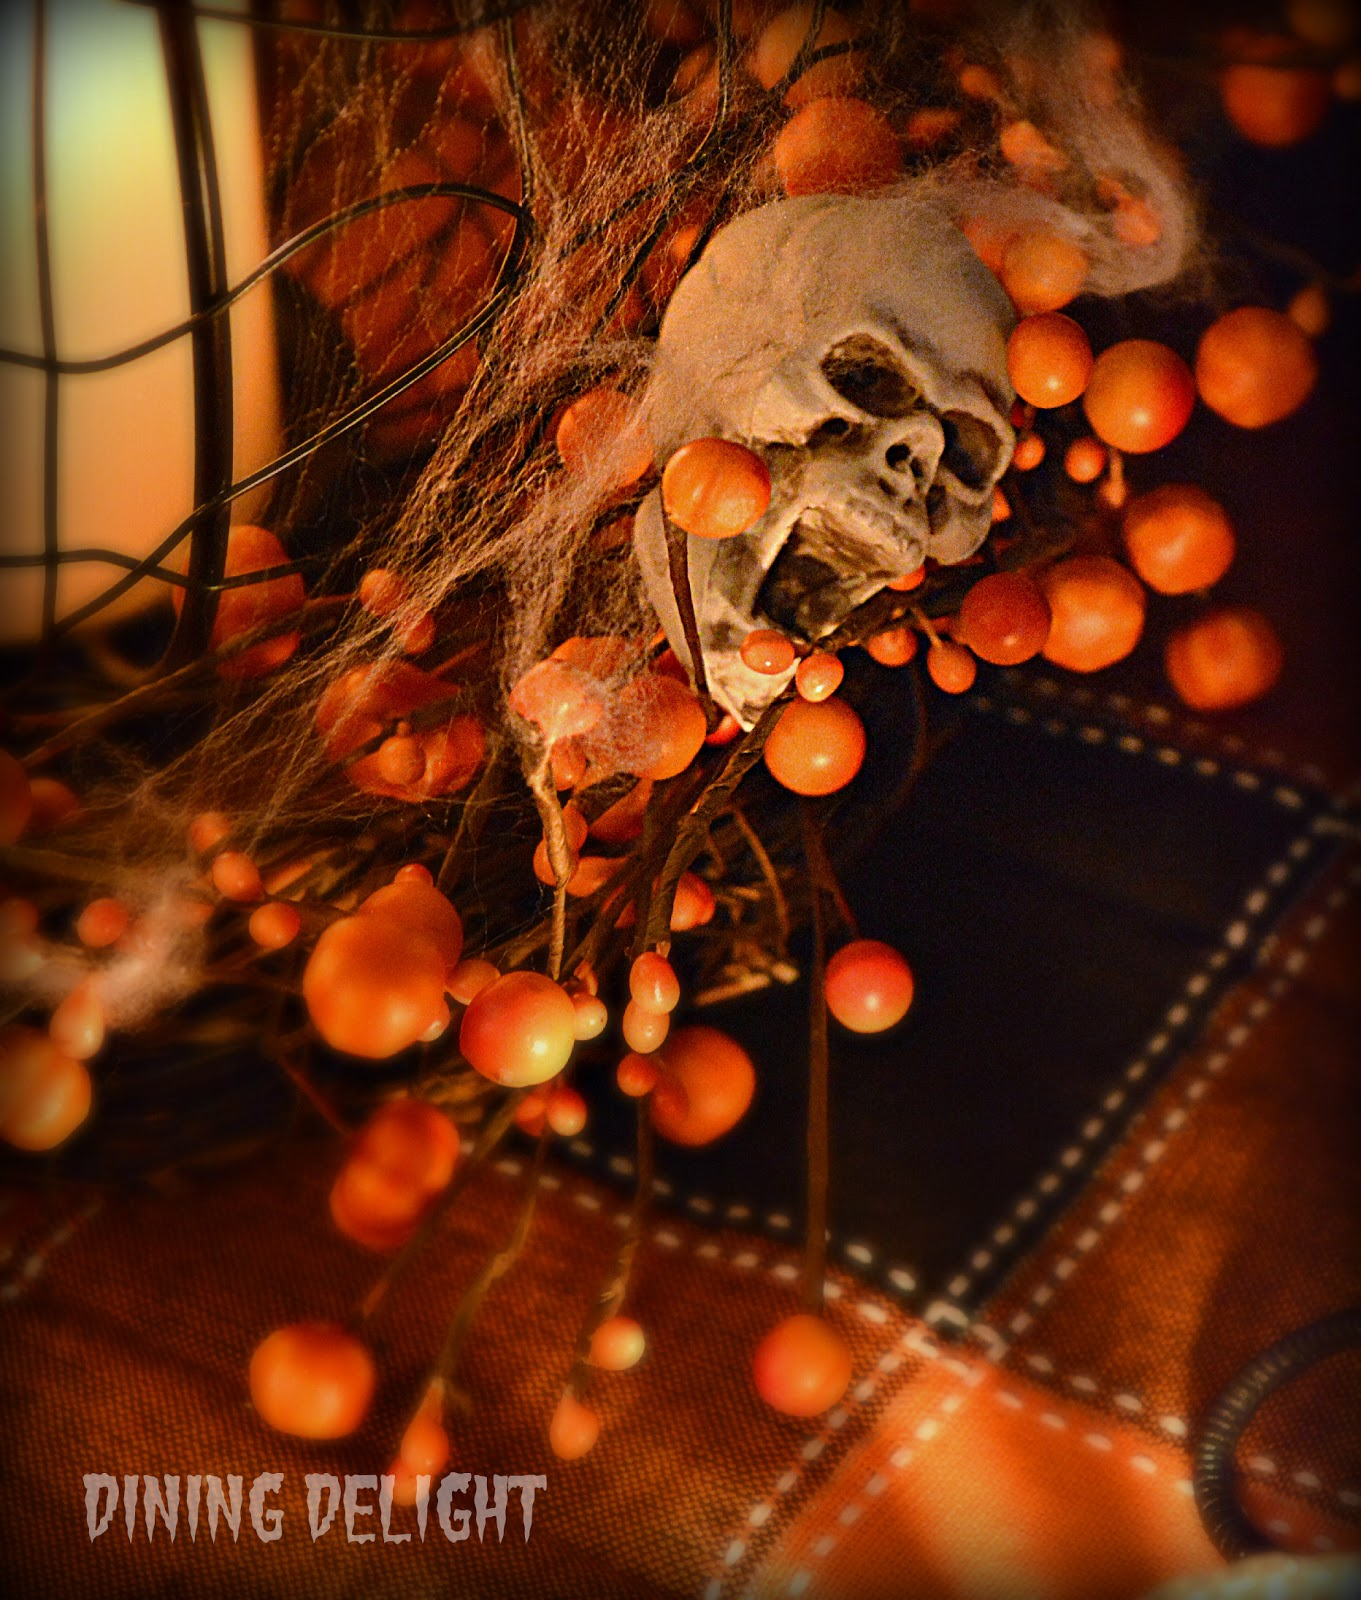 Very Scary Halloween Decorations: Dining Delight: A Very Scary Halloween Tablescape